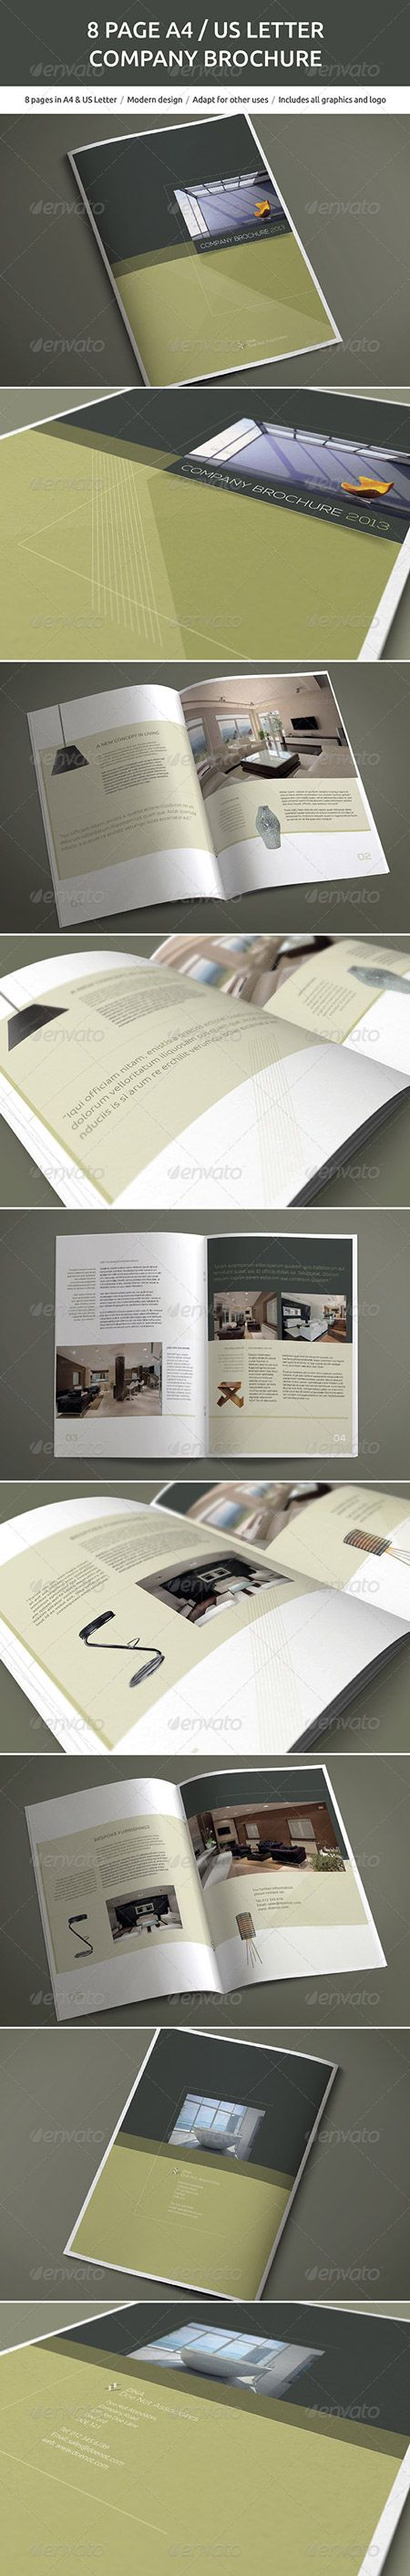 804 best Layout Guides images on Pinterest   Charts, Graph design ...